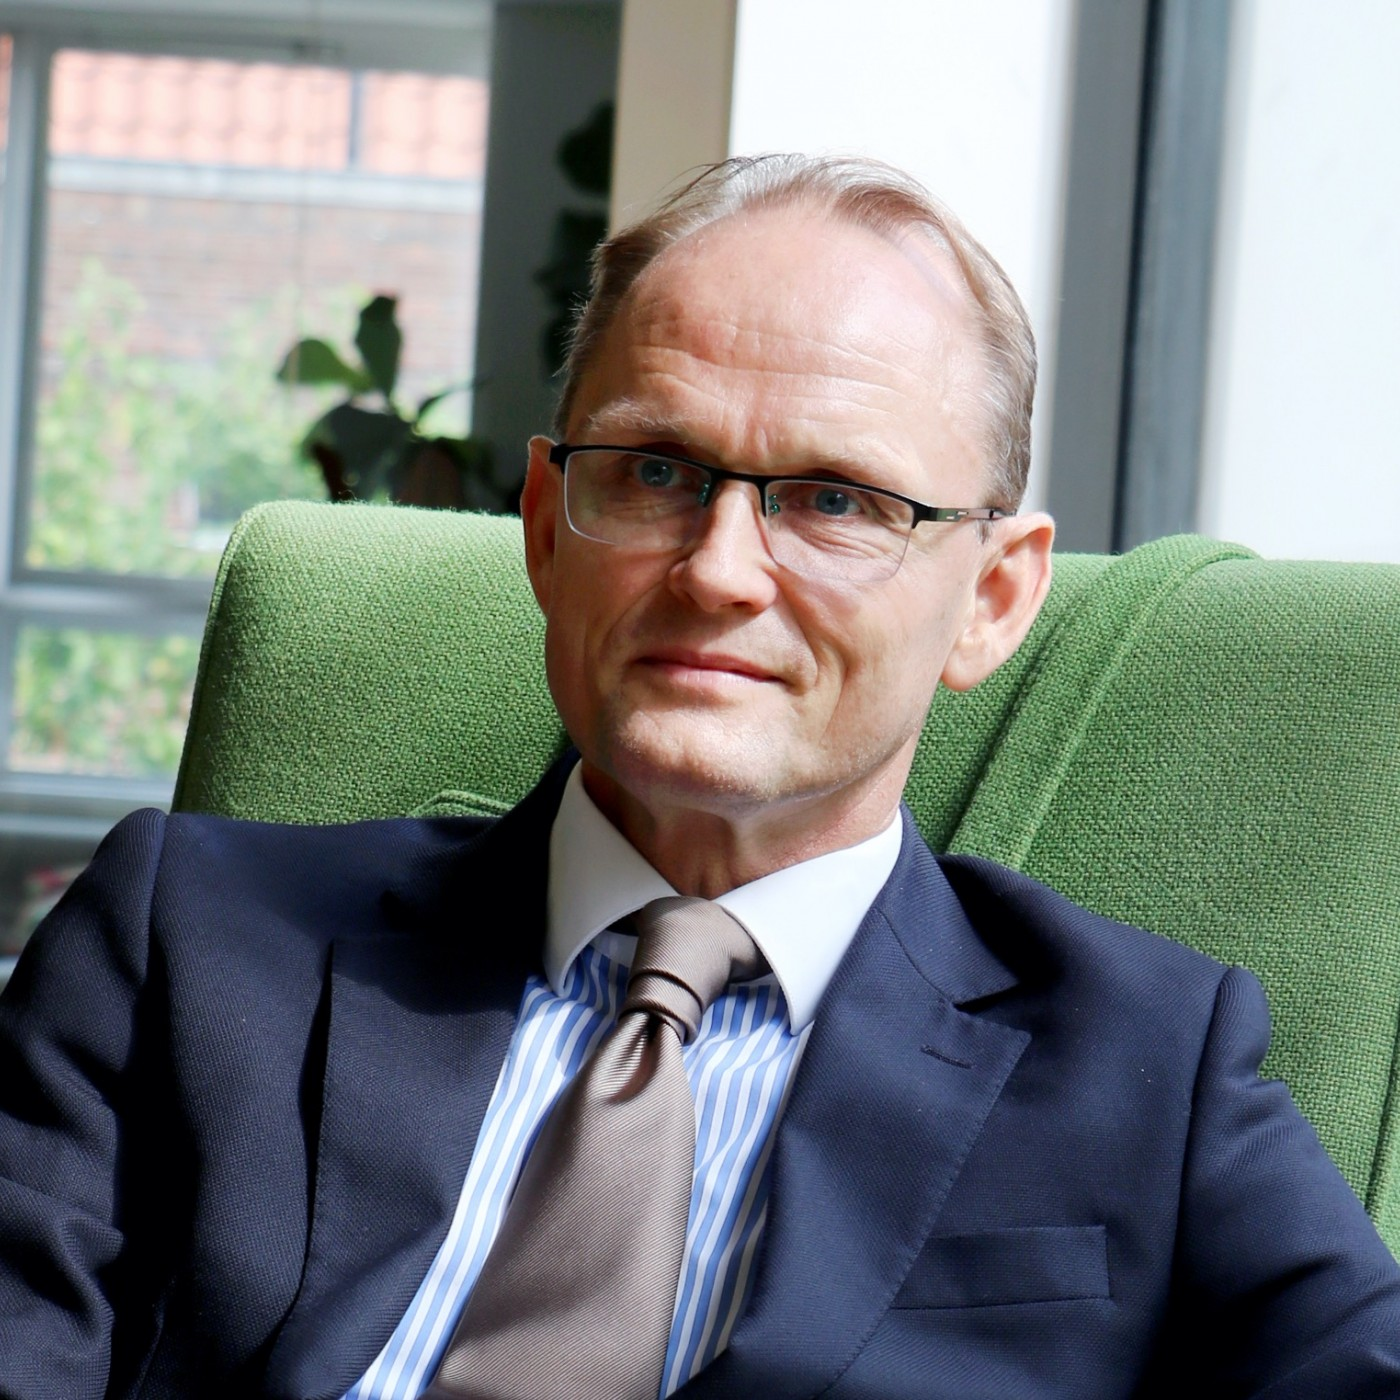 Work hard and play hard with Johan Roos, Chief Academic Officer at HULT